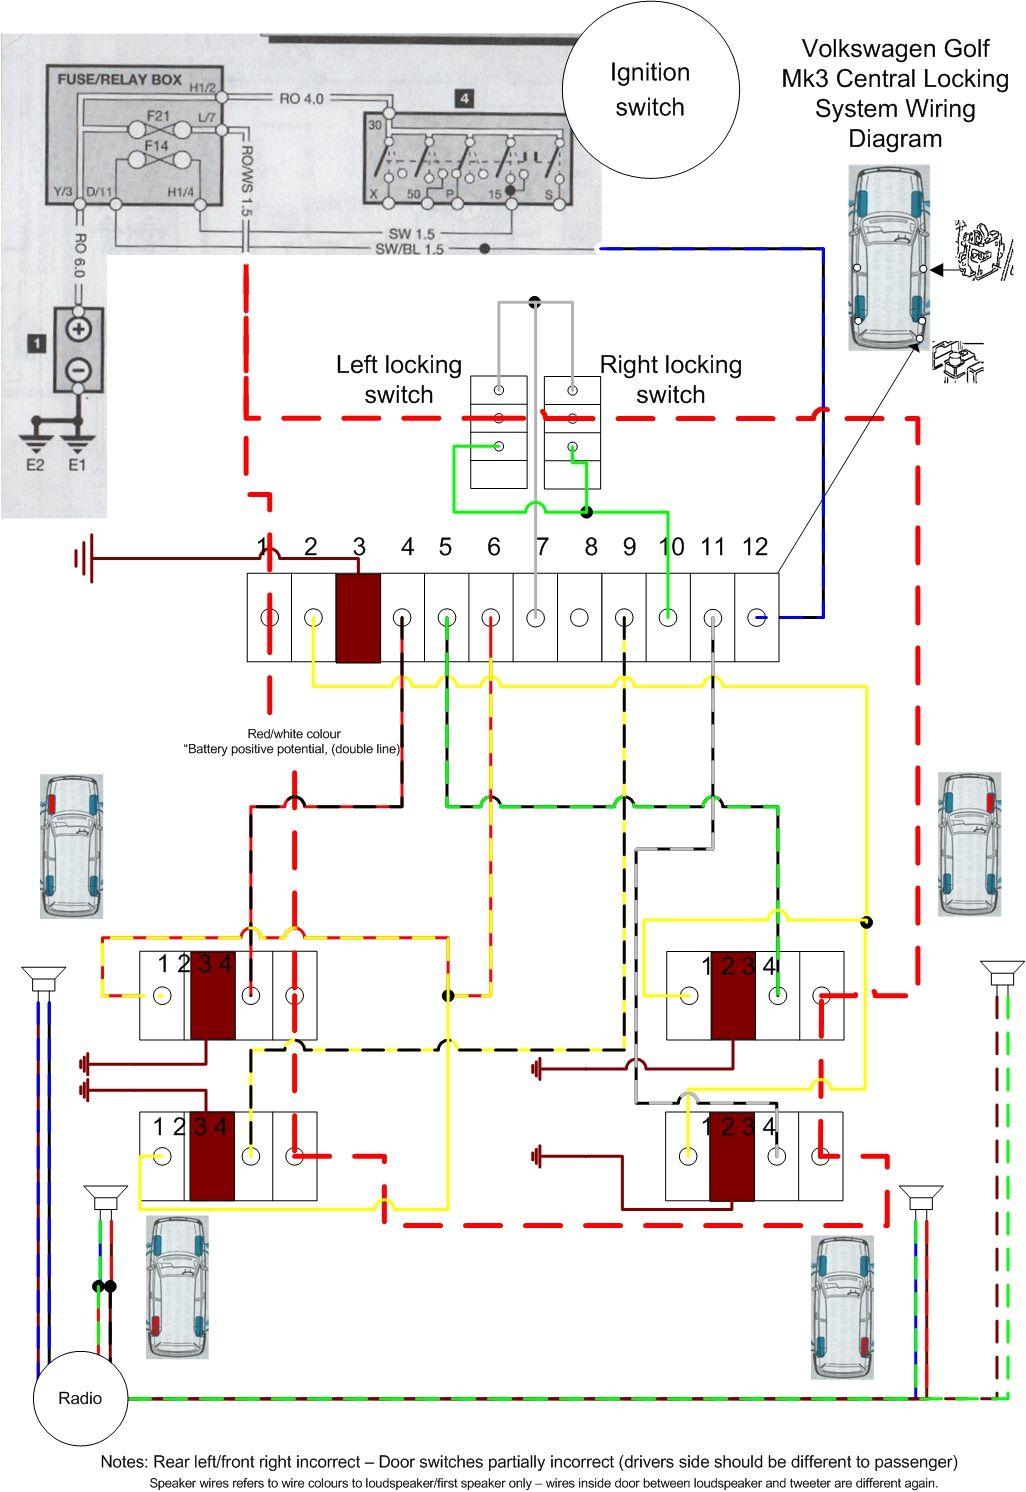 vw ignition switch wiring diagram ... | vw up, diagram, volkswagen up  pinterest